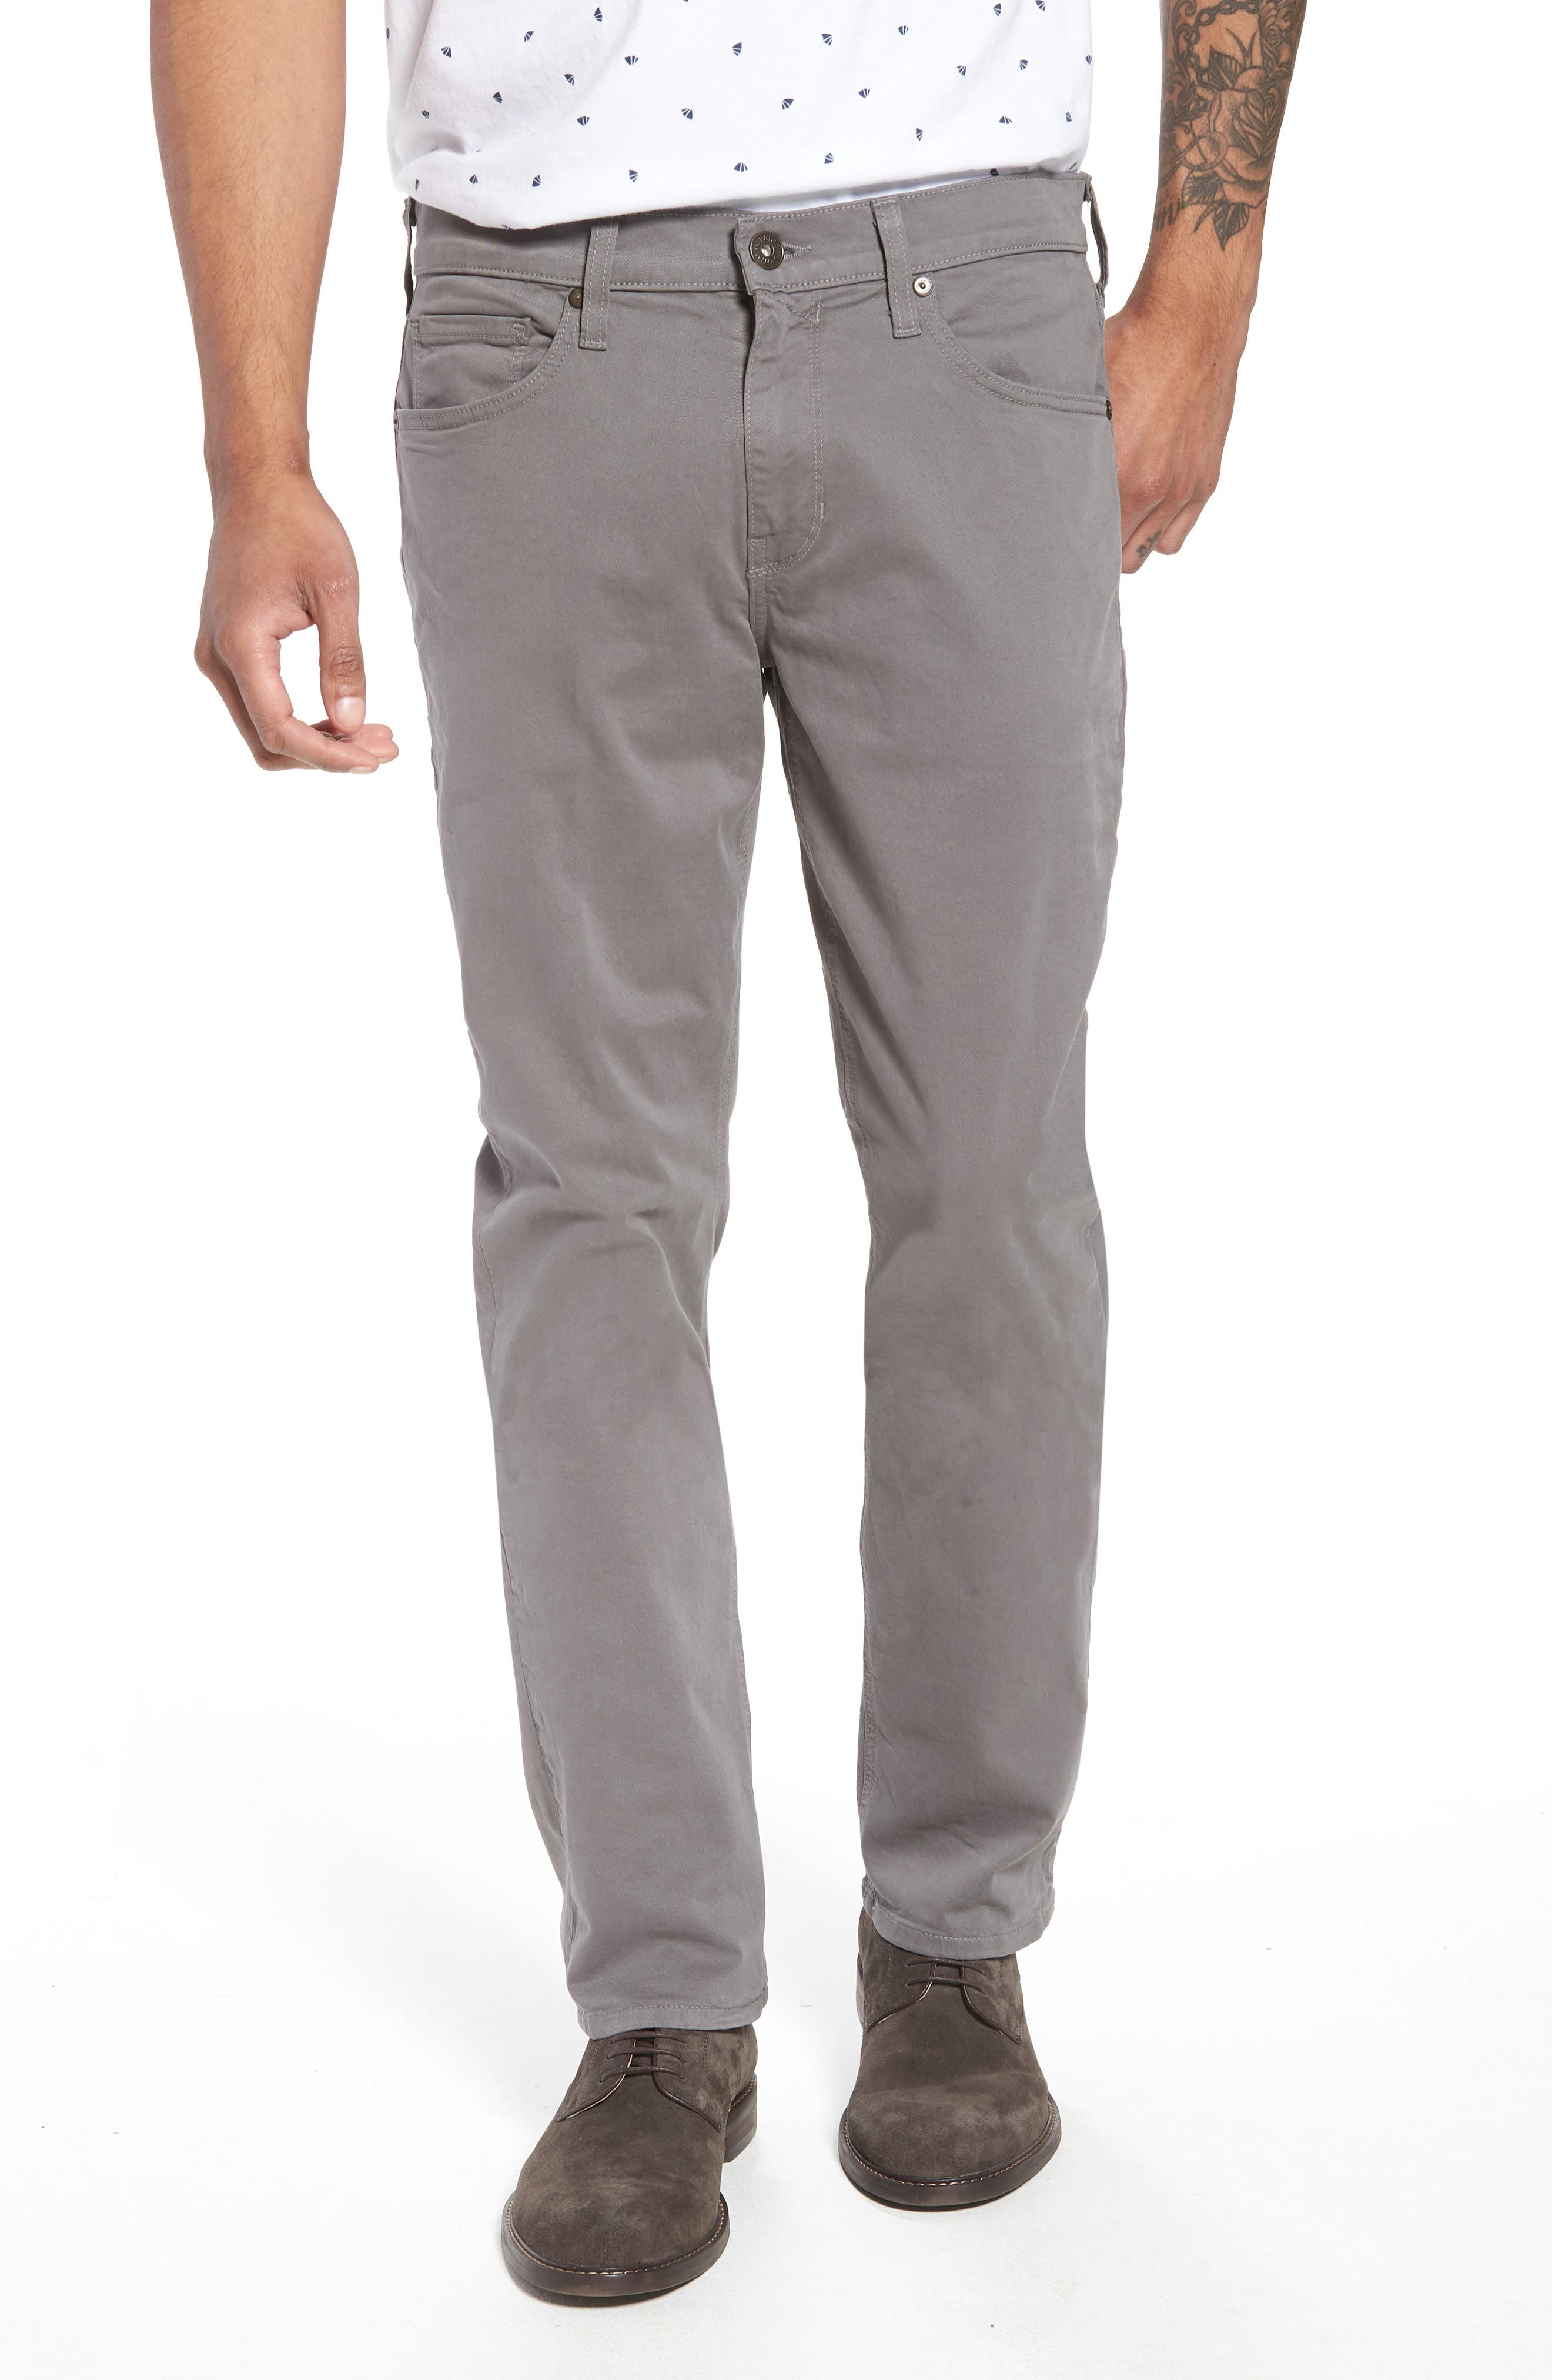 PAIGE 'Federal' Slim Straight Leg Twill Pants, Main, color, 022